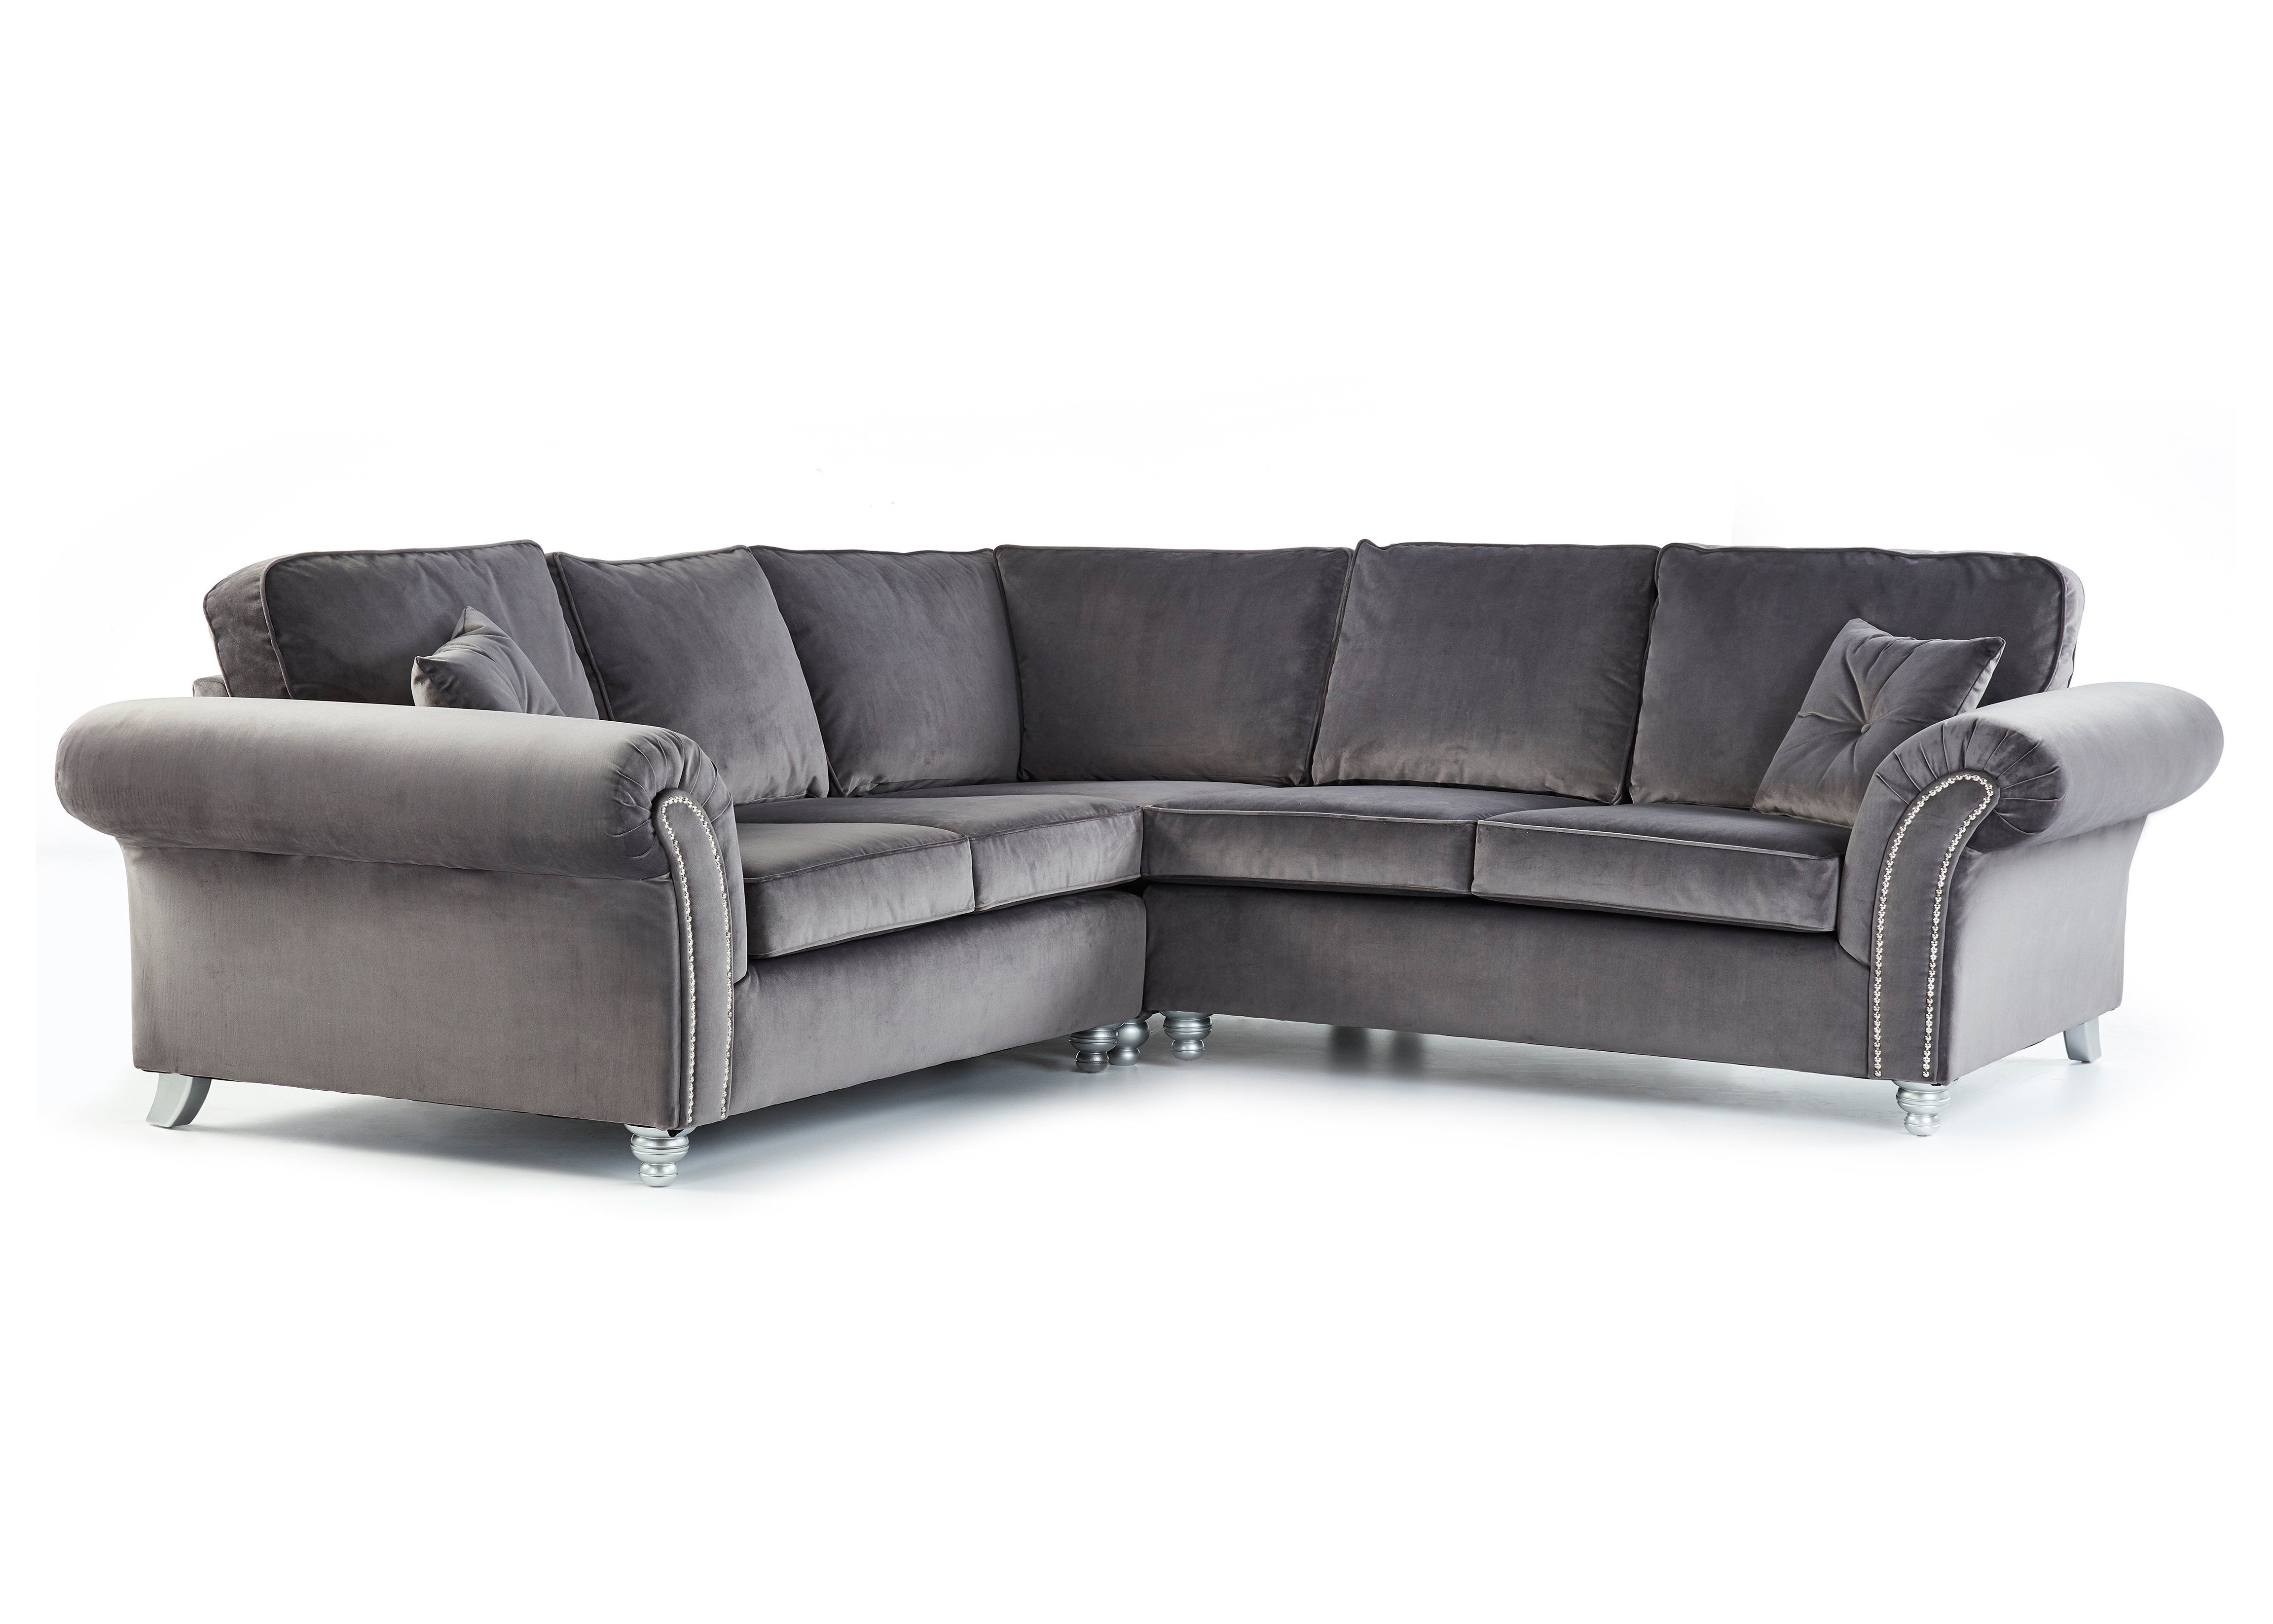 Sofa Quick Delivery Minimalist Bed Uk Leather Sofas Fast Review Home Co